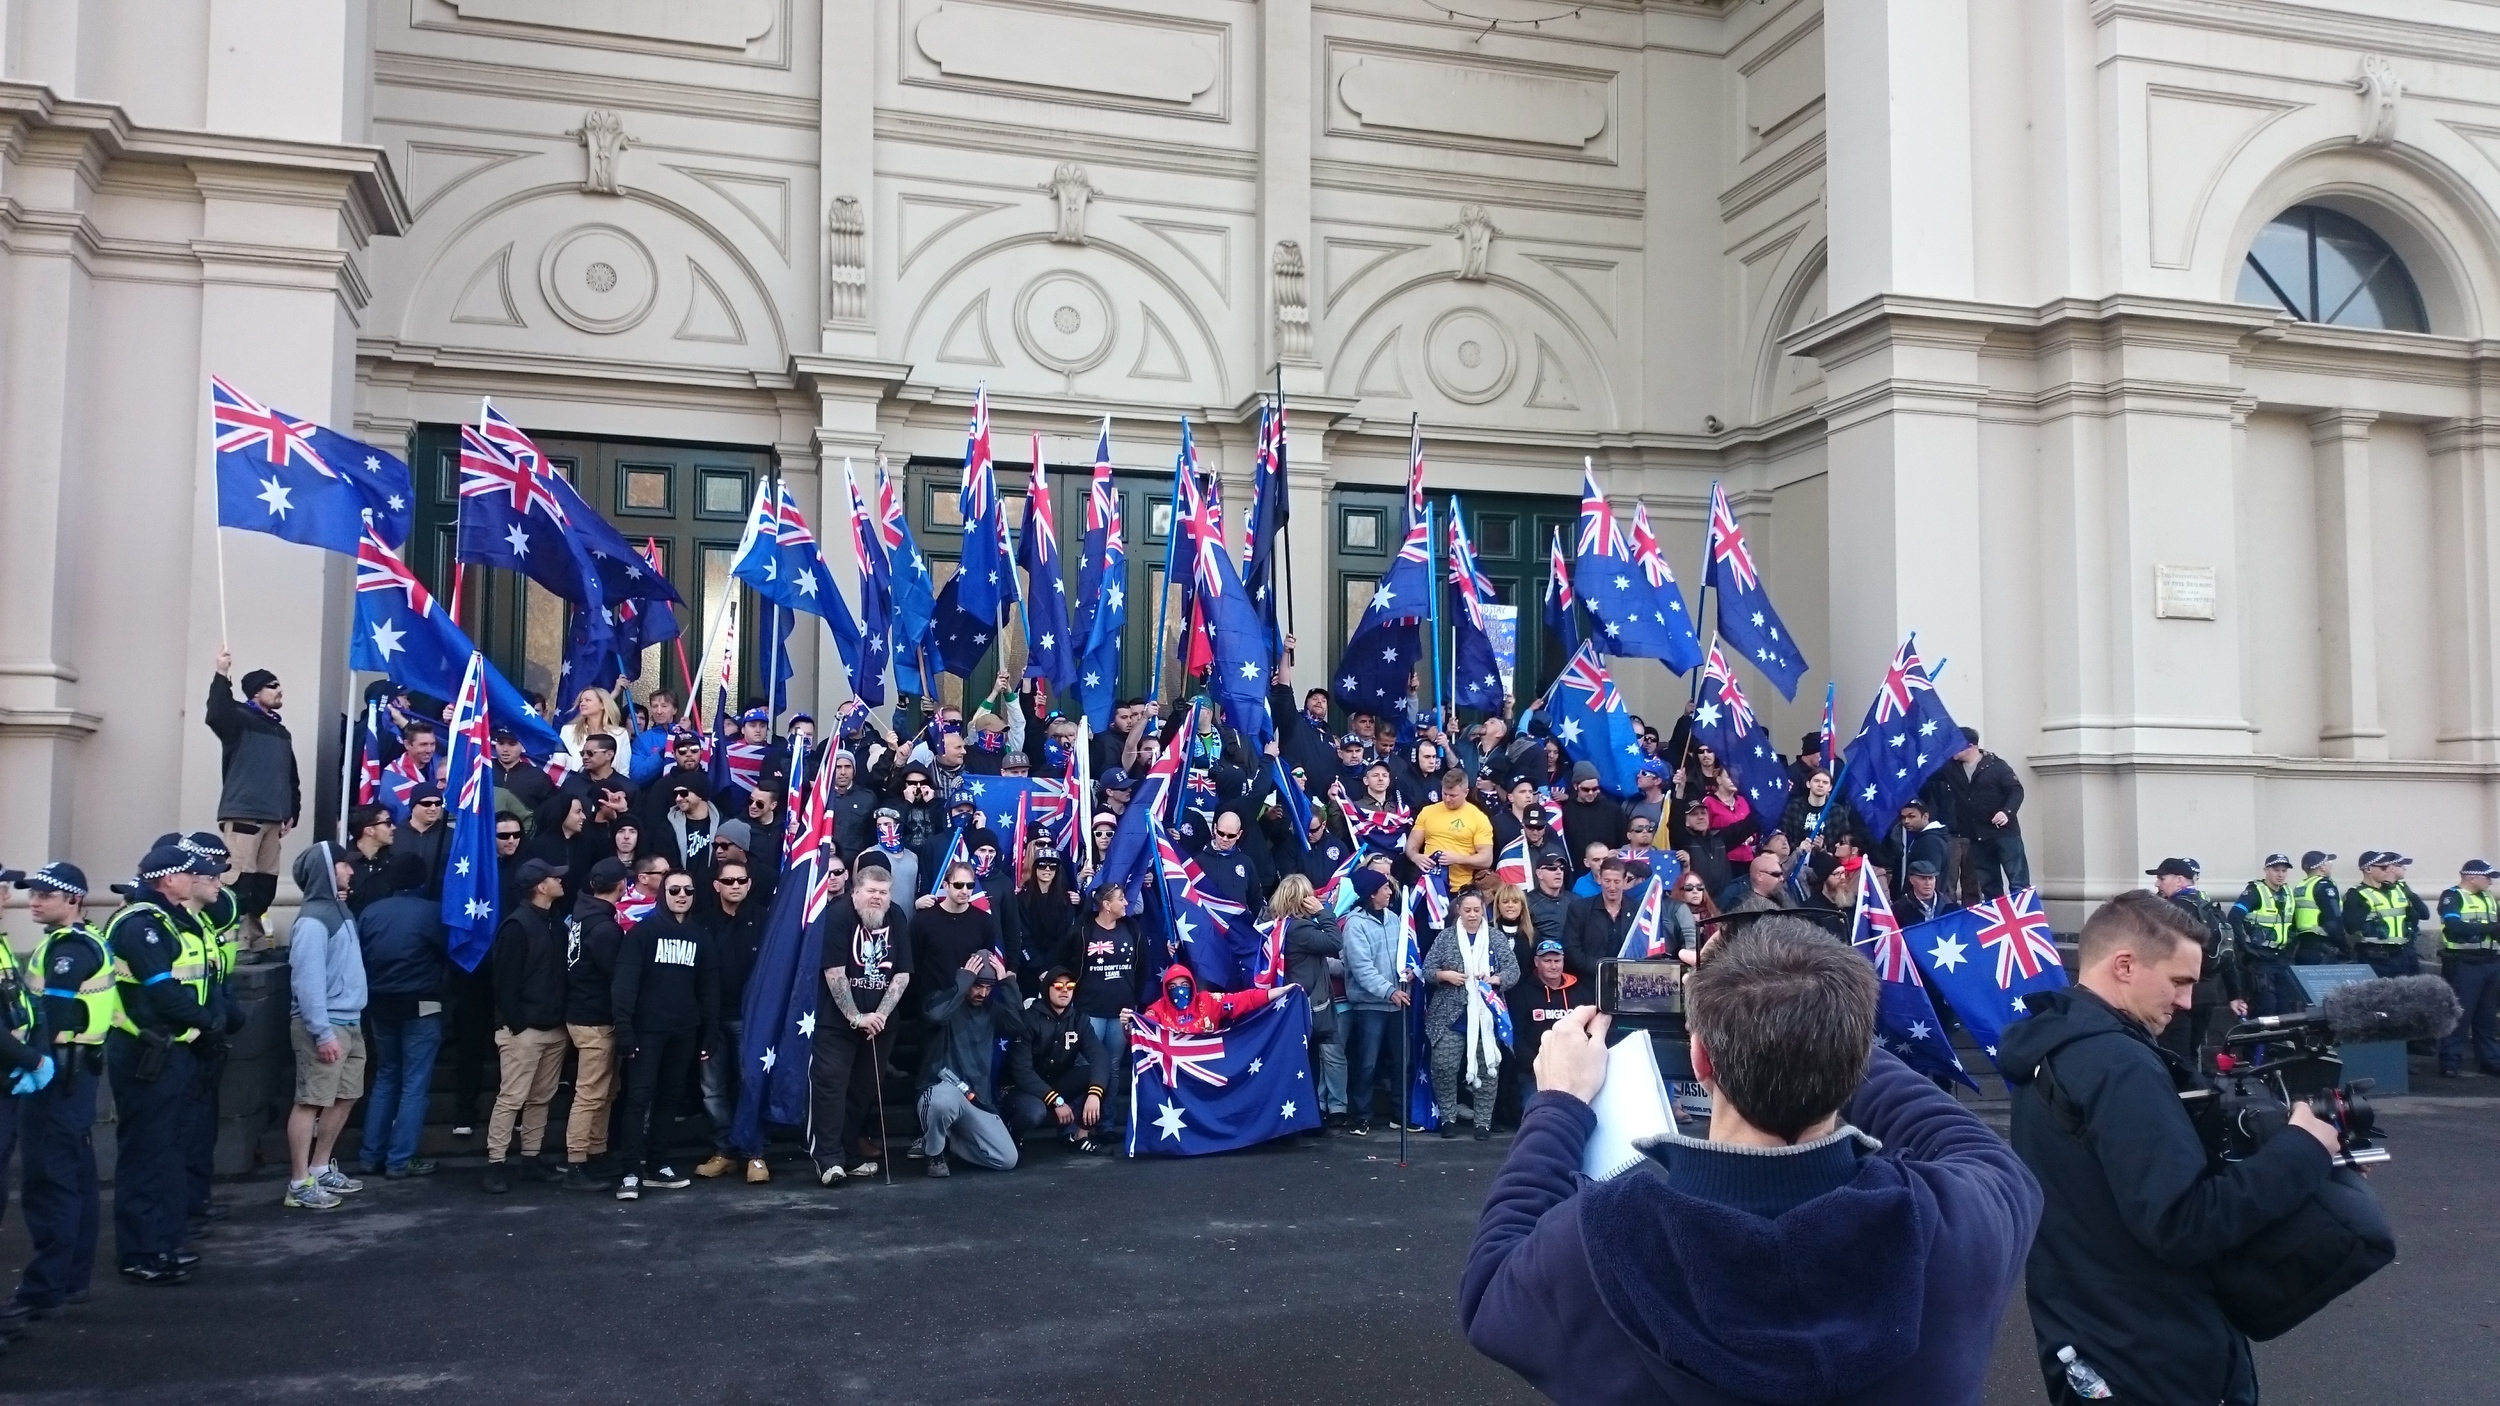 All those at the rally celebrate the day.